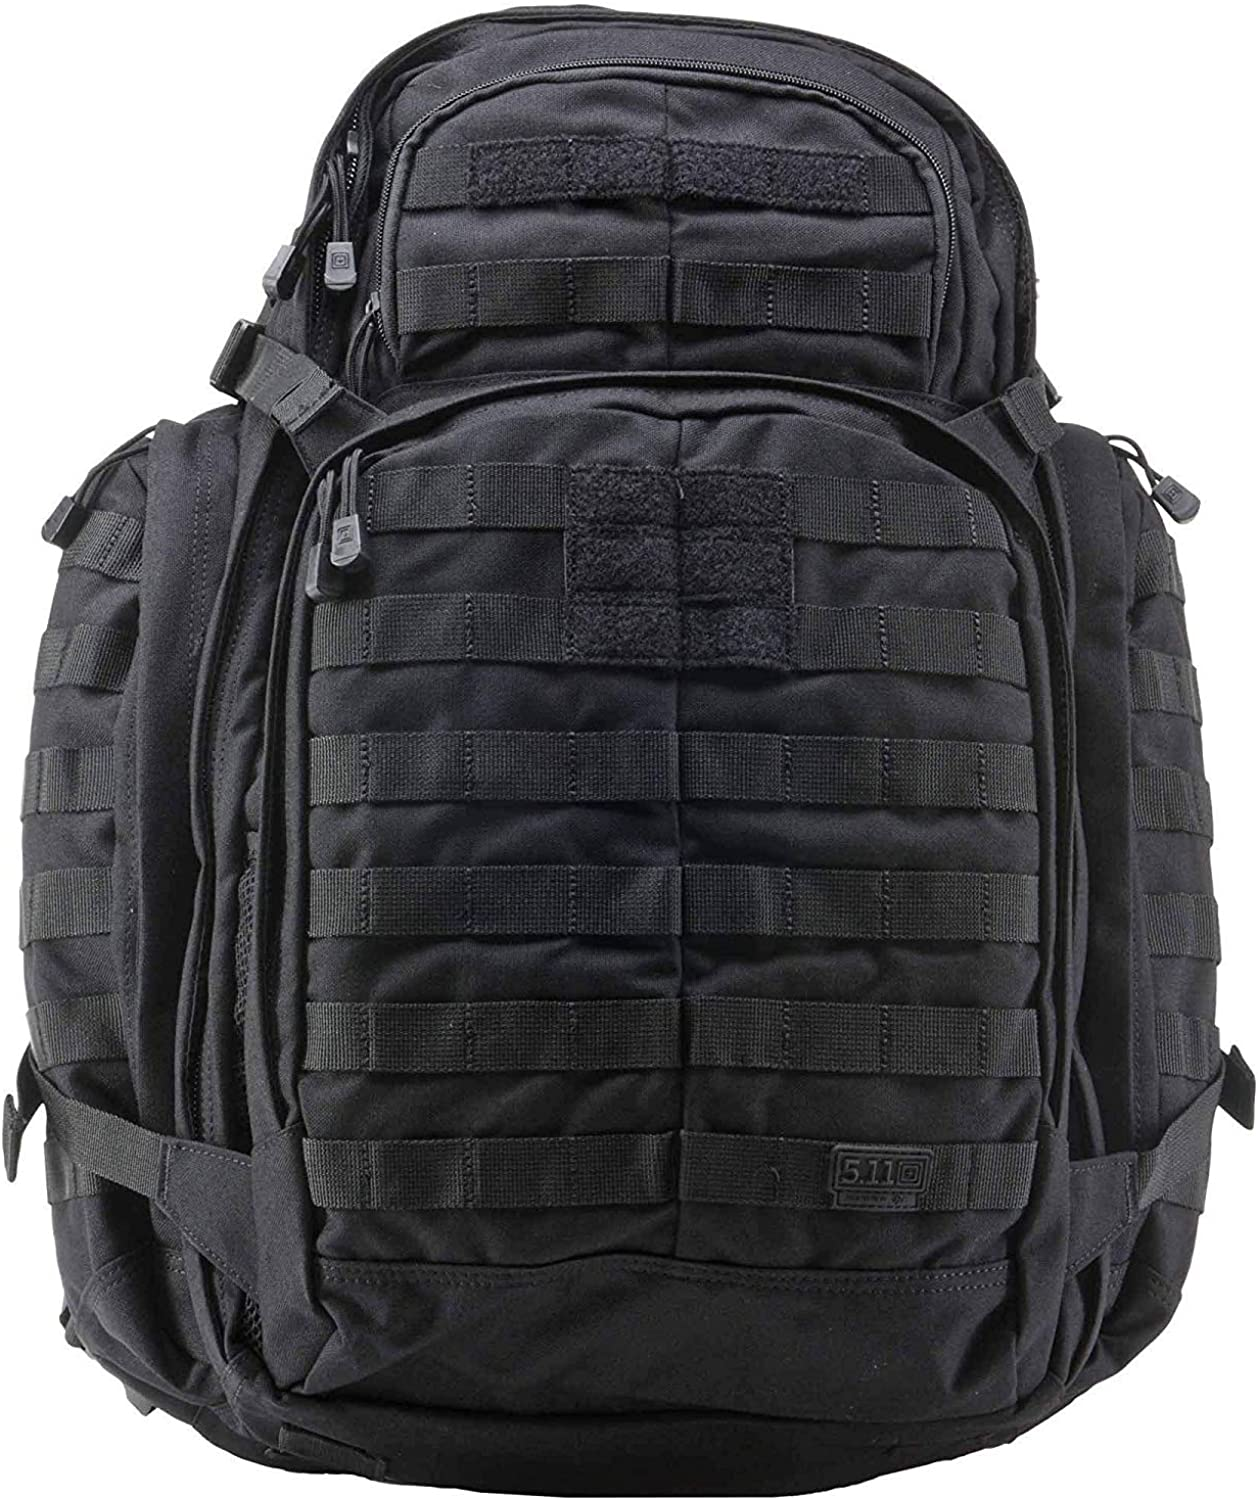 5.11 Tactical RUSH72 Military Backpack}